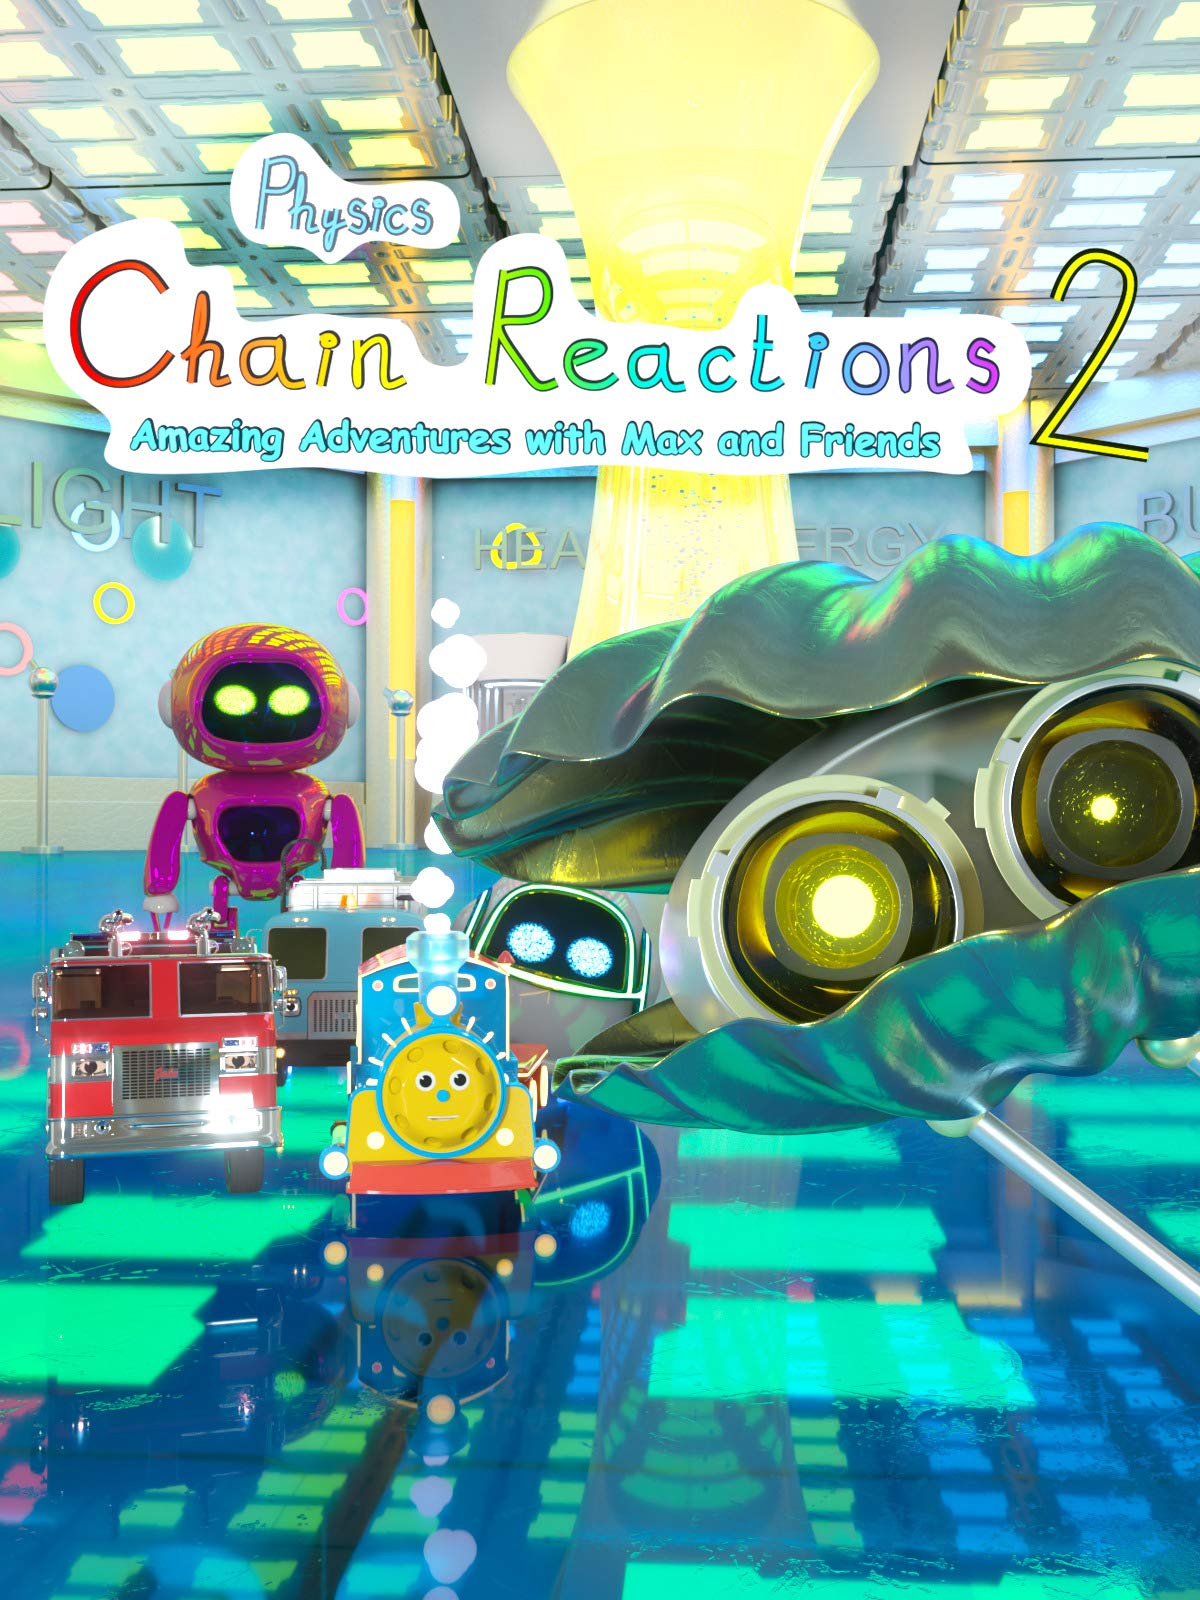 Chain Reactions (Physics) Part 2 | Amazing Adventures with Max and Friends!